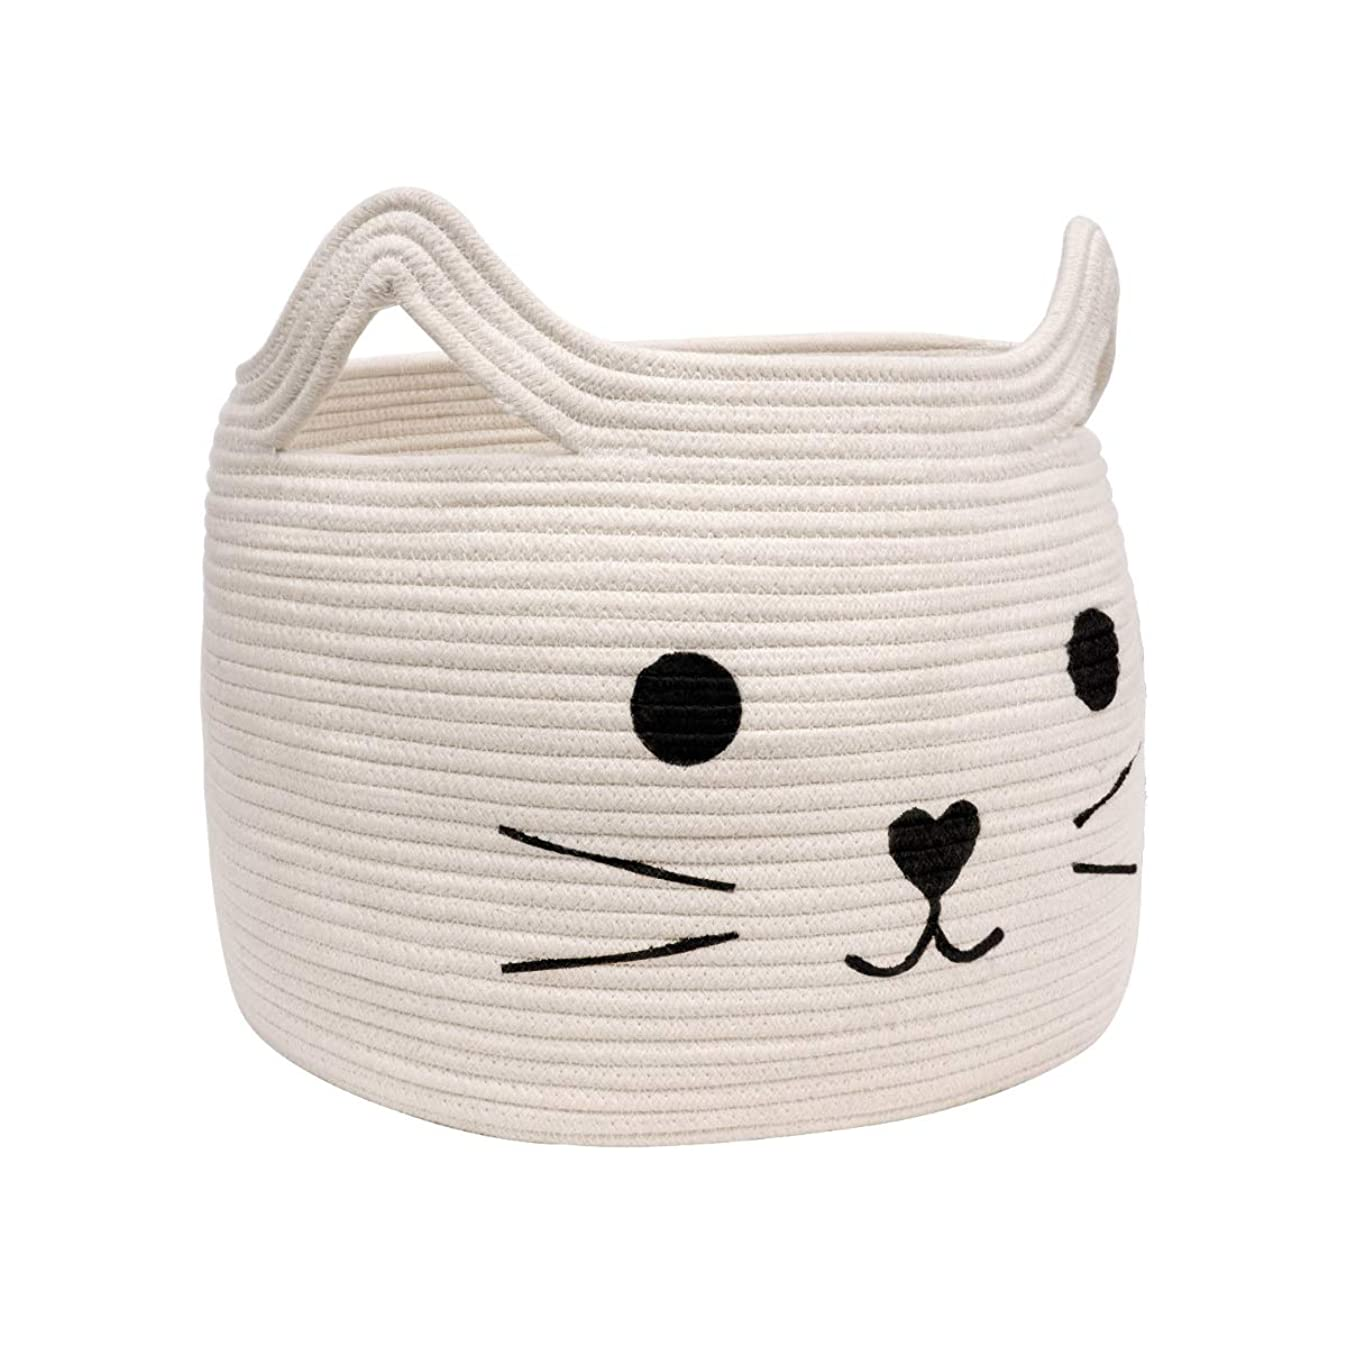 HiChen Large Woven Cotton Rope Storage Basket, Laundry Basket Organizer for Towels, Blanket, Toys, Clothes, Gifts | Pet Gift Basket for Cat, Dog - 15.7